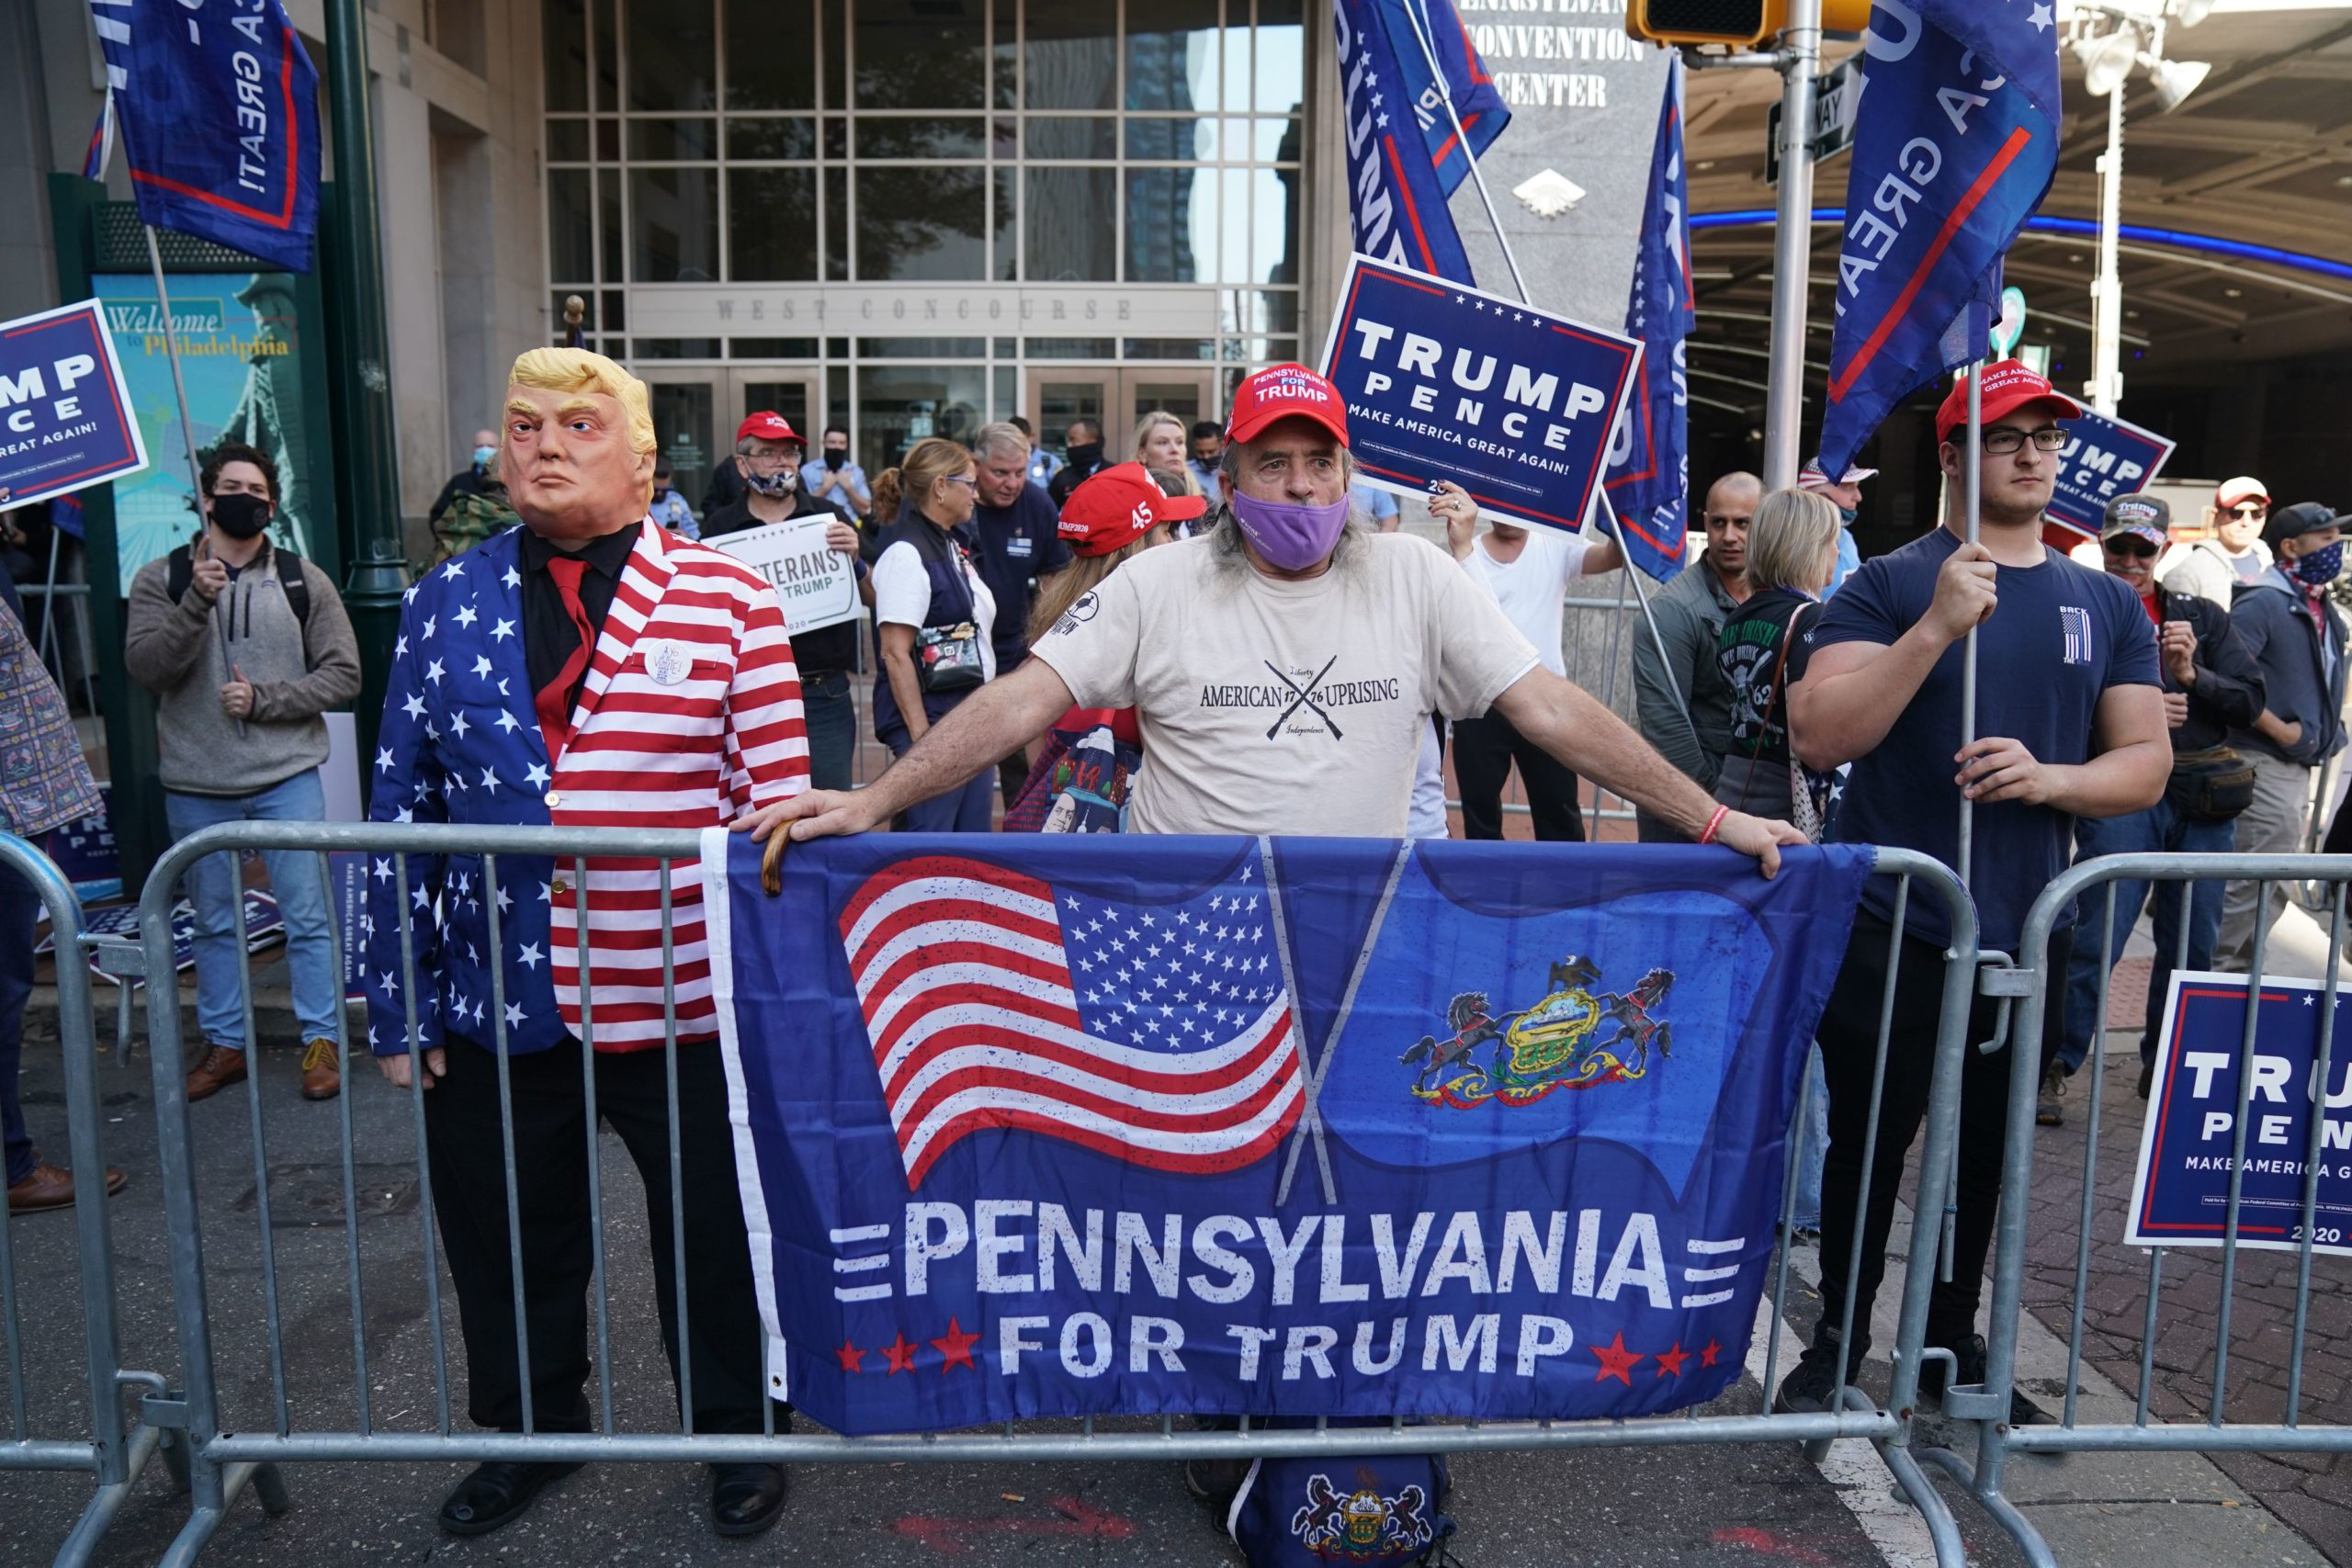 Supporters of President Donald Trump protest on Nov. 6 in Philadelphia, Pennsylvania. (Bryan R. Smith/AFP via Getty Images)